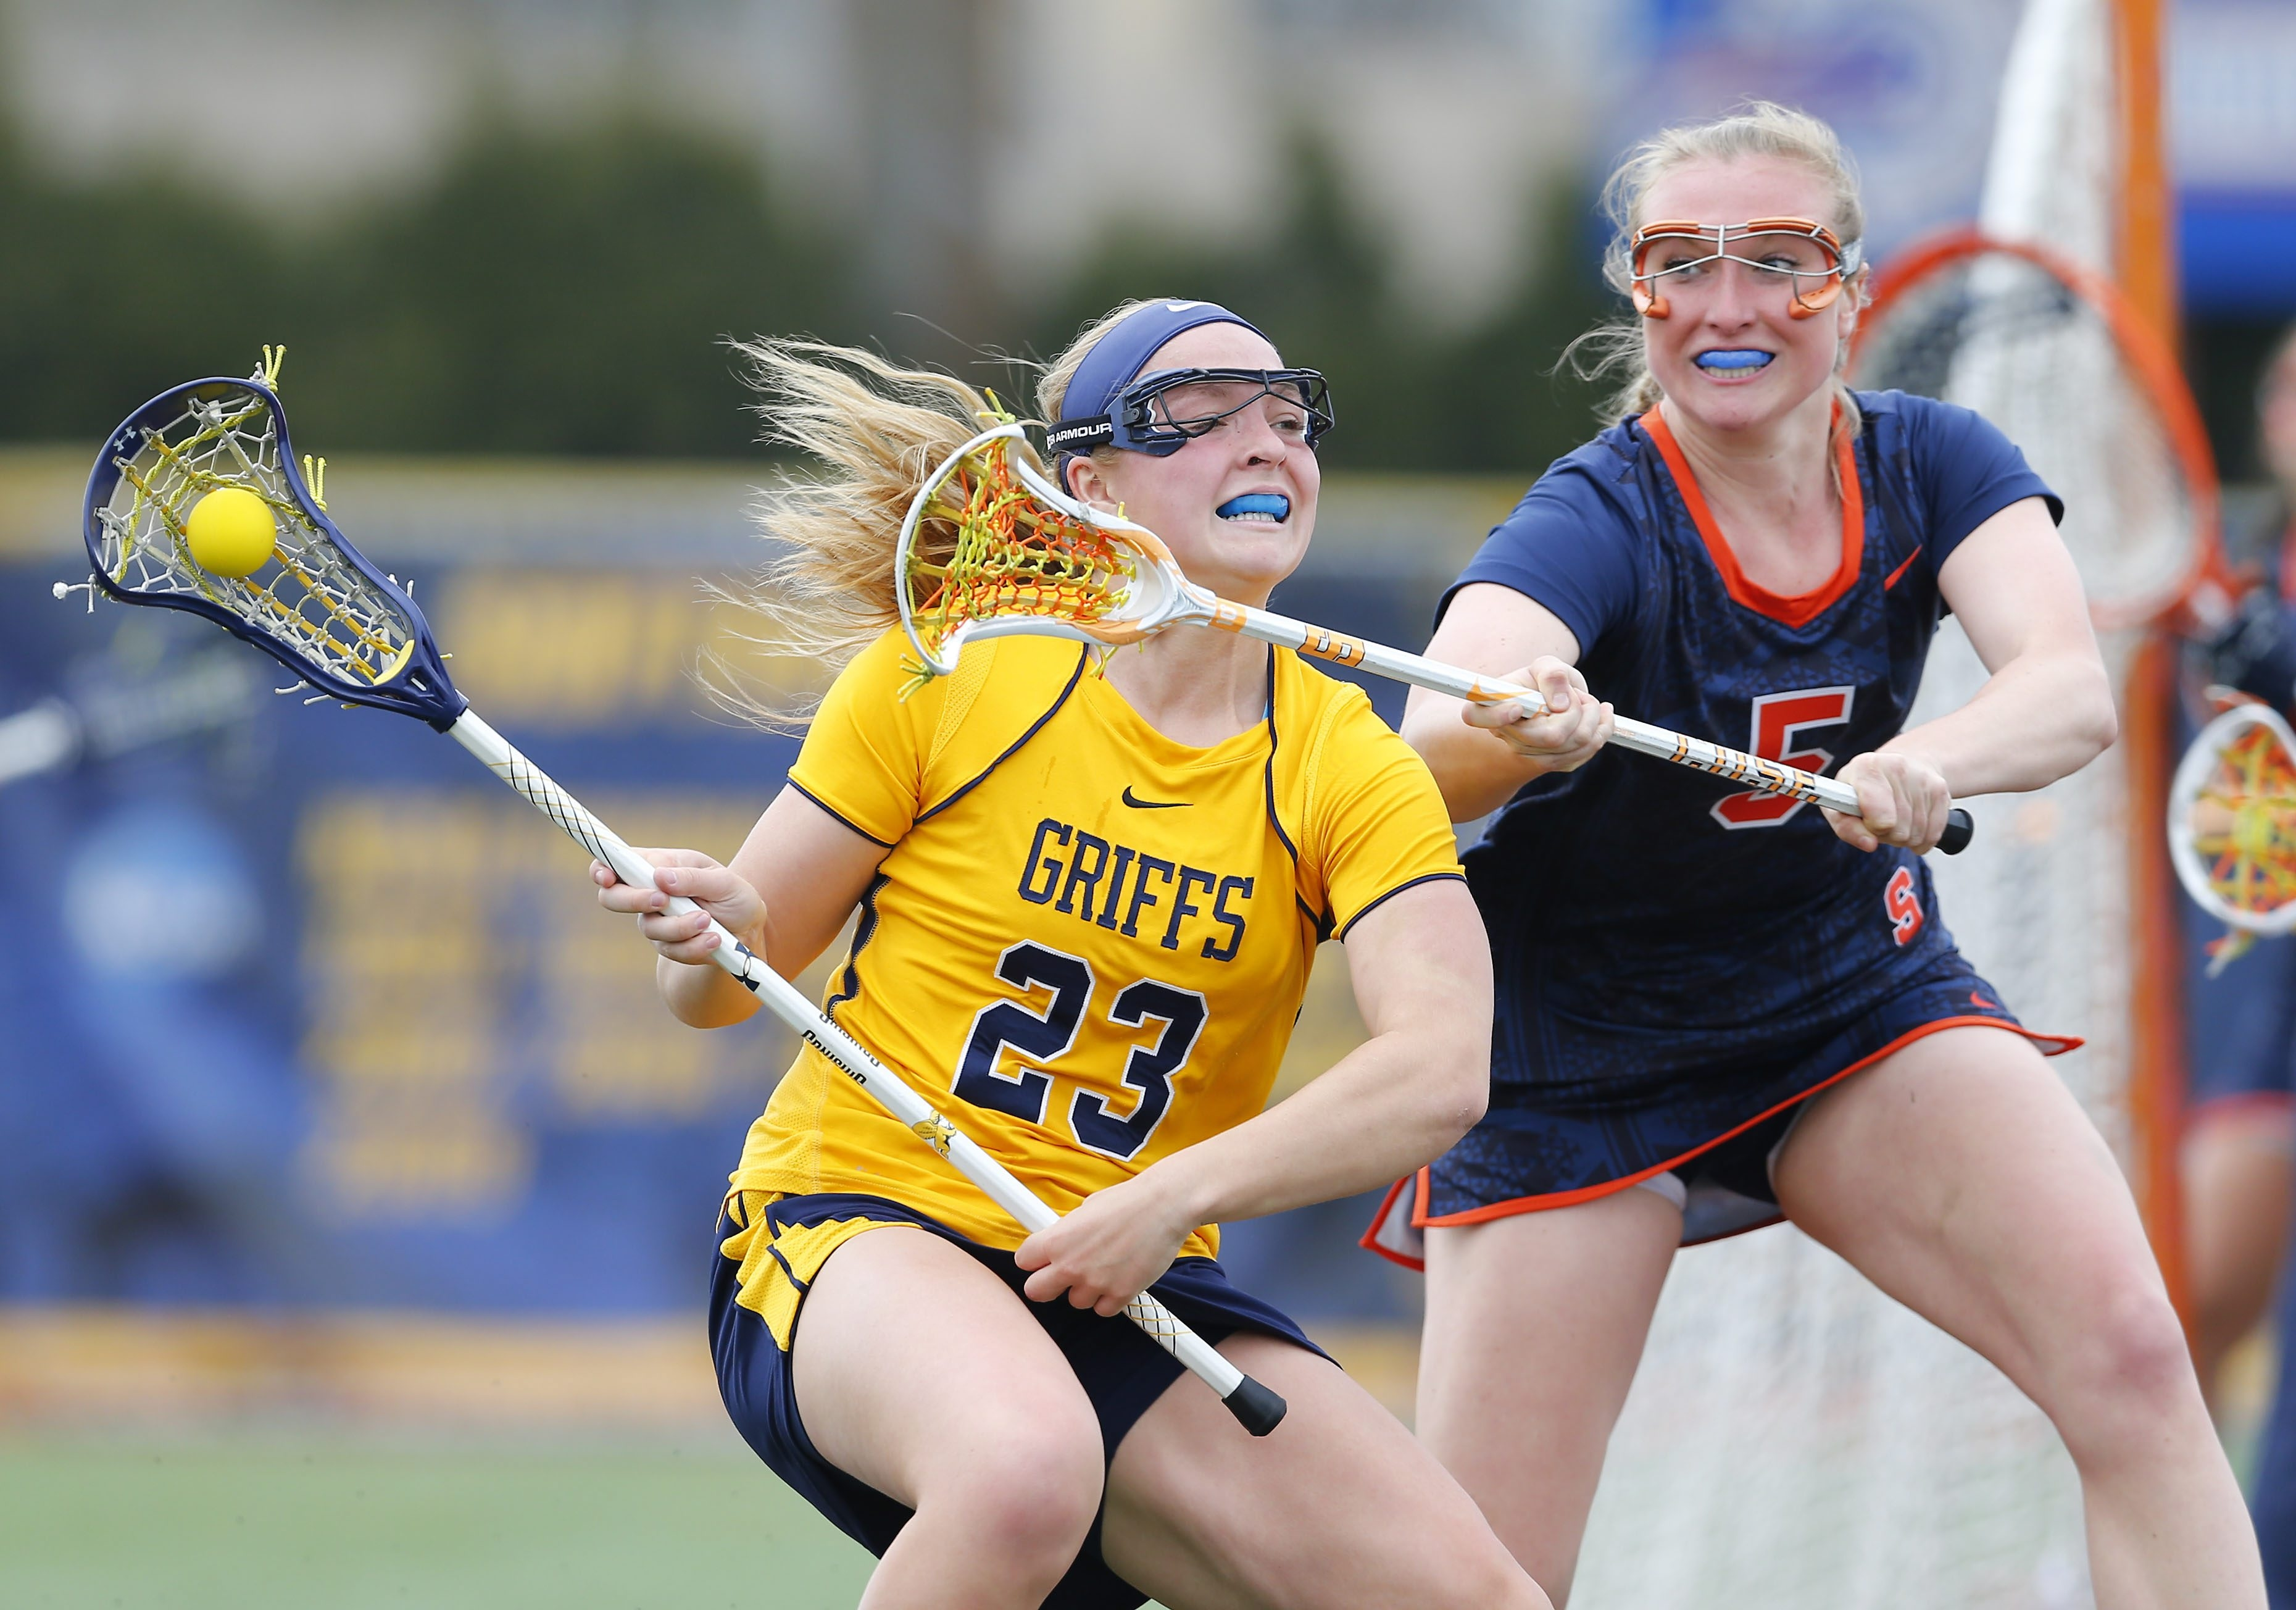 Jourdan Roemer of Canisius tries to get past Haley McDonnell of Syracuse in their game on Tuesday.